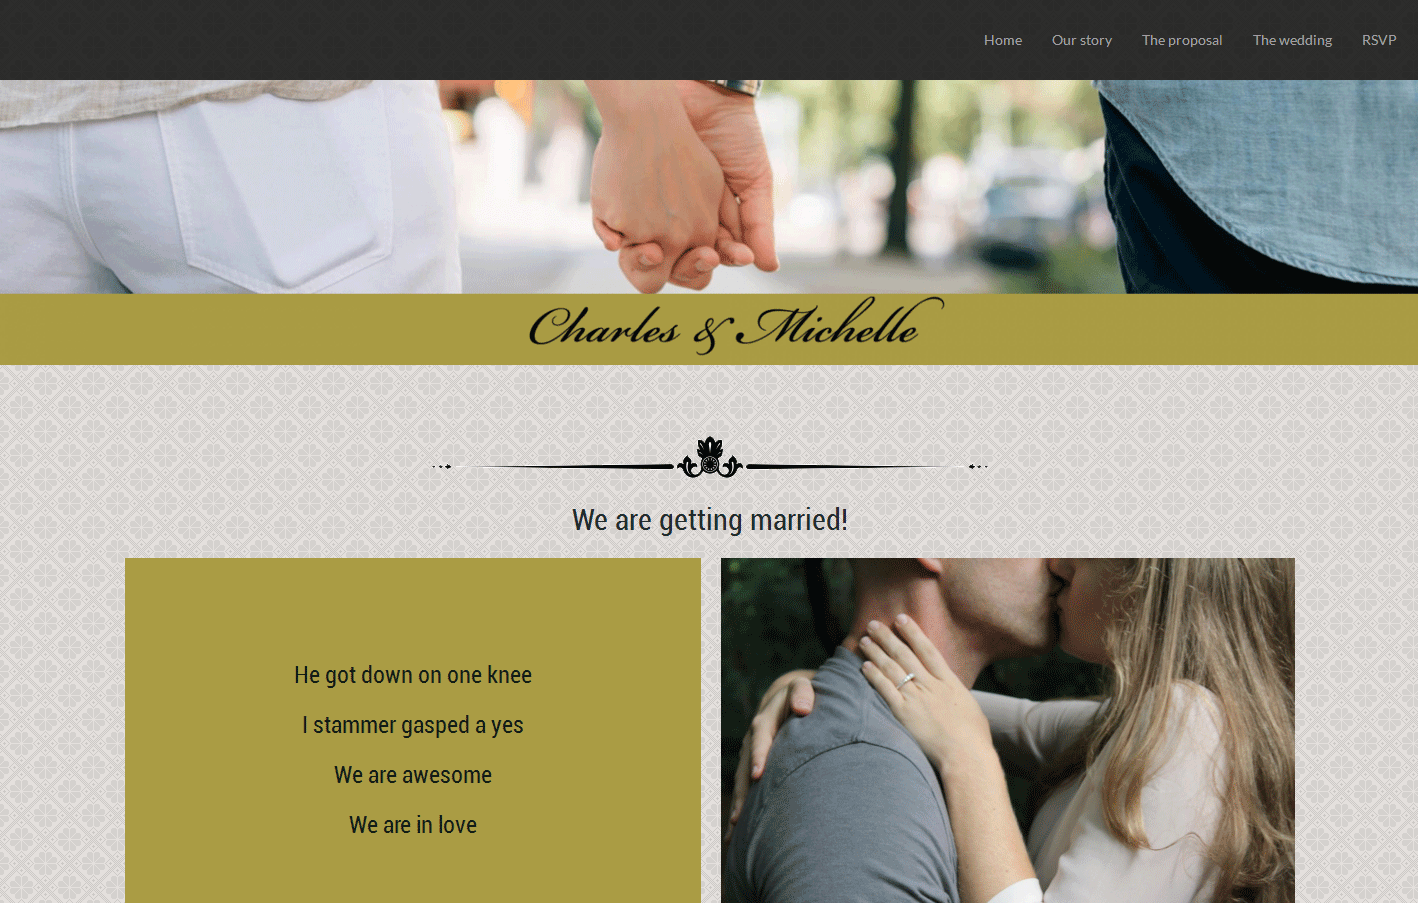 Marriage demo website